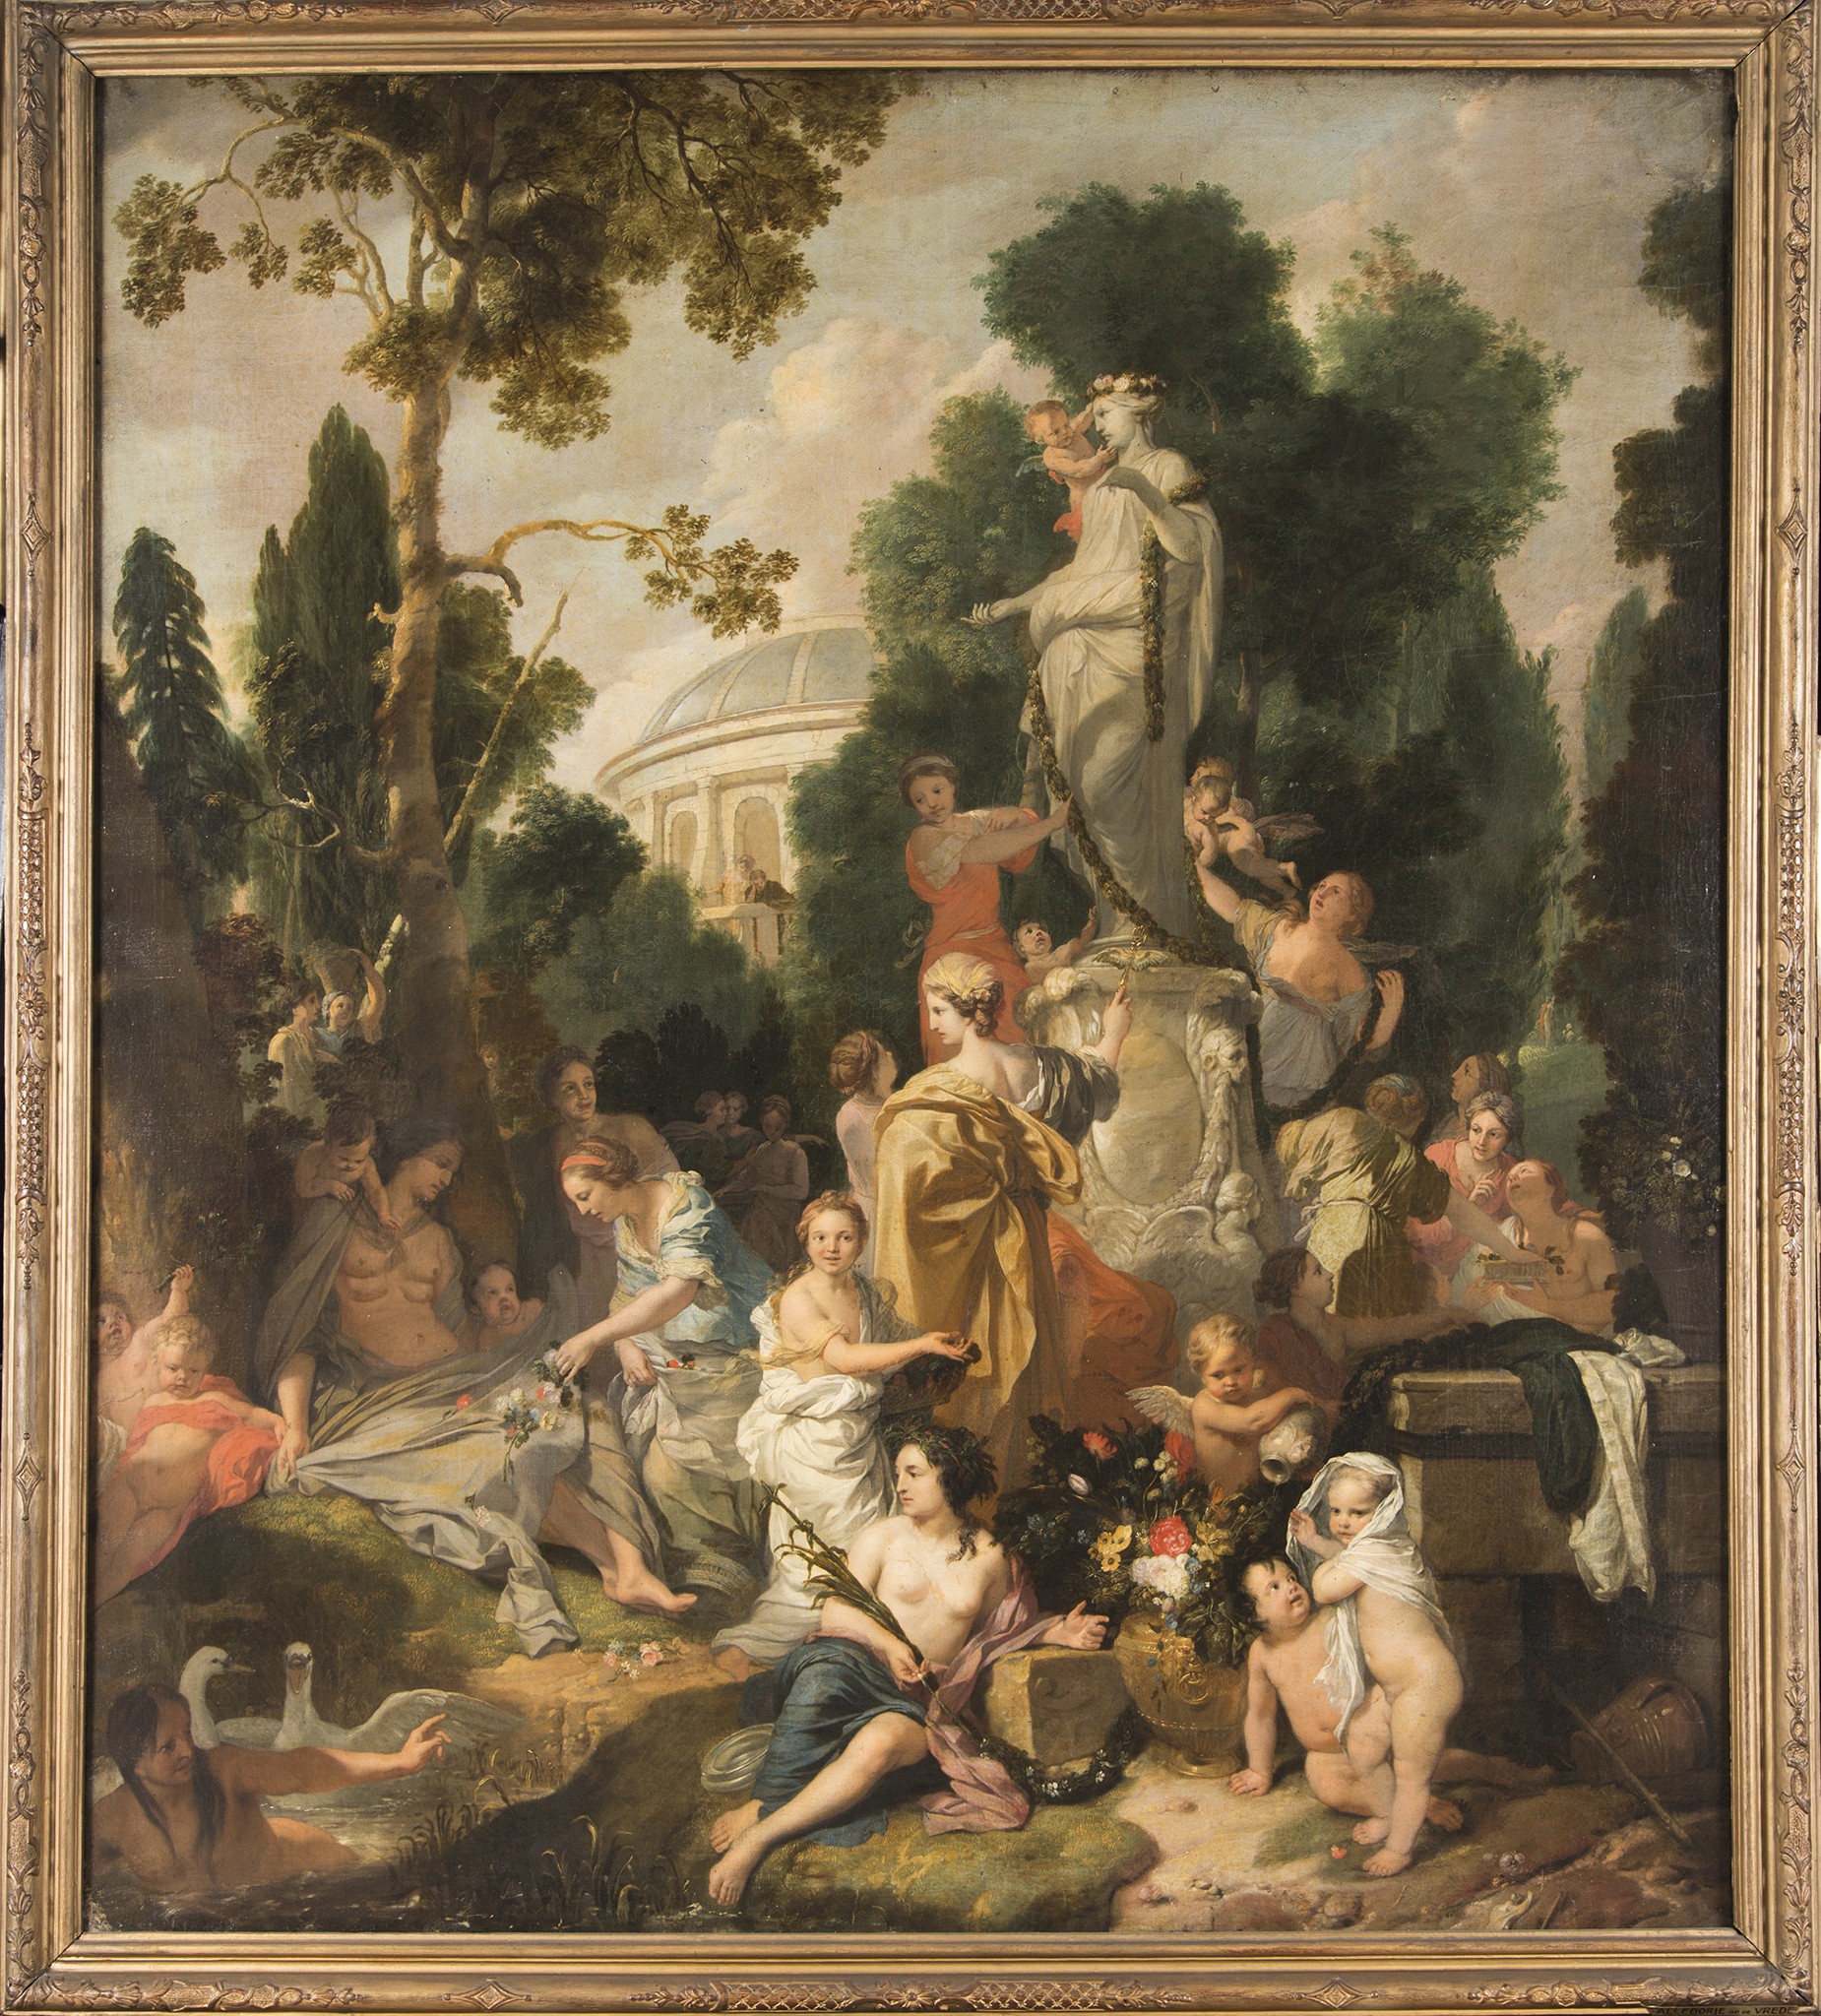 """Ambiance Et Style Tableau on gerard de lairesse's """"frenchness,"""" his liège roots, and"""